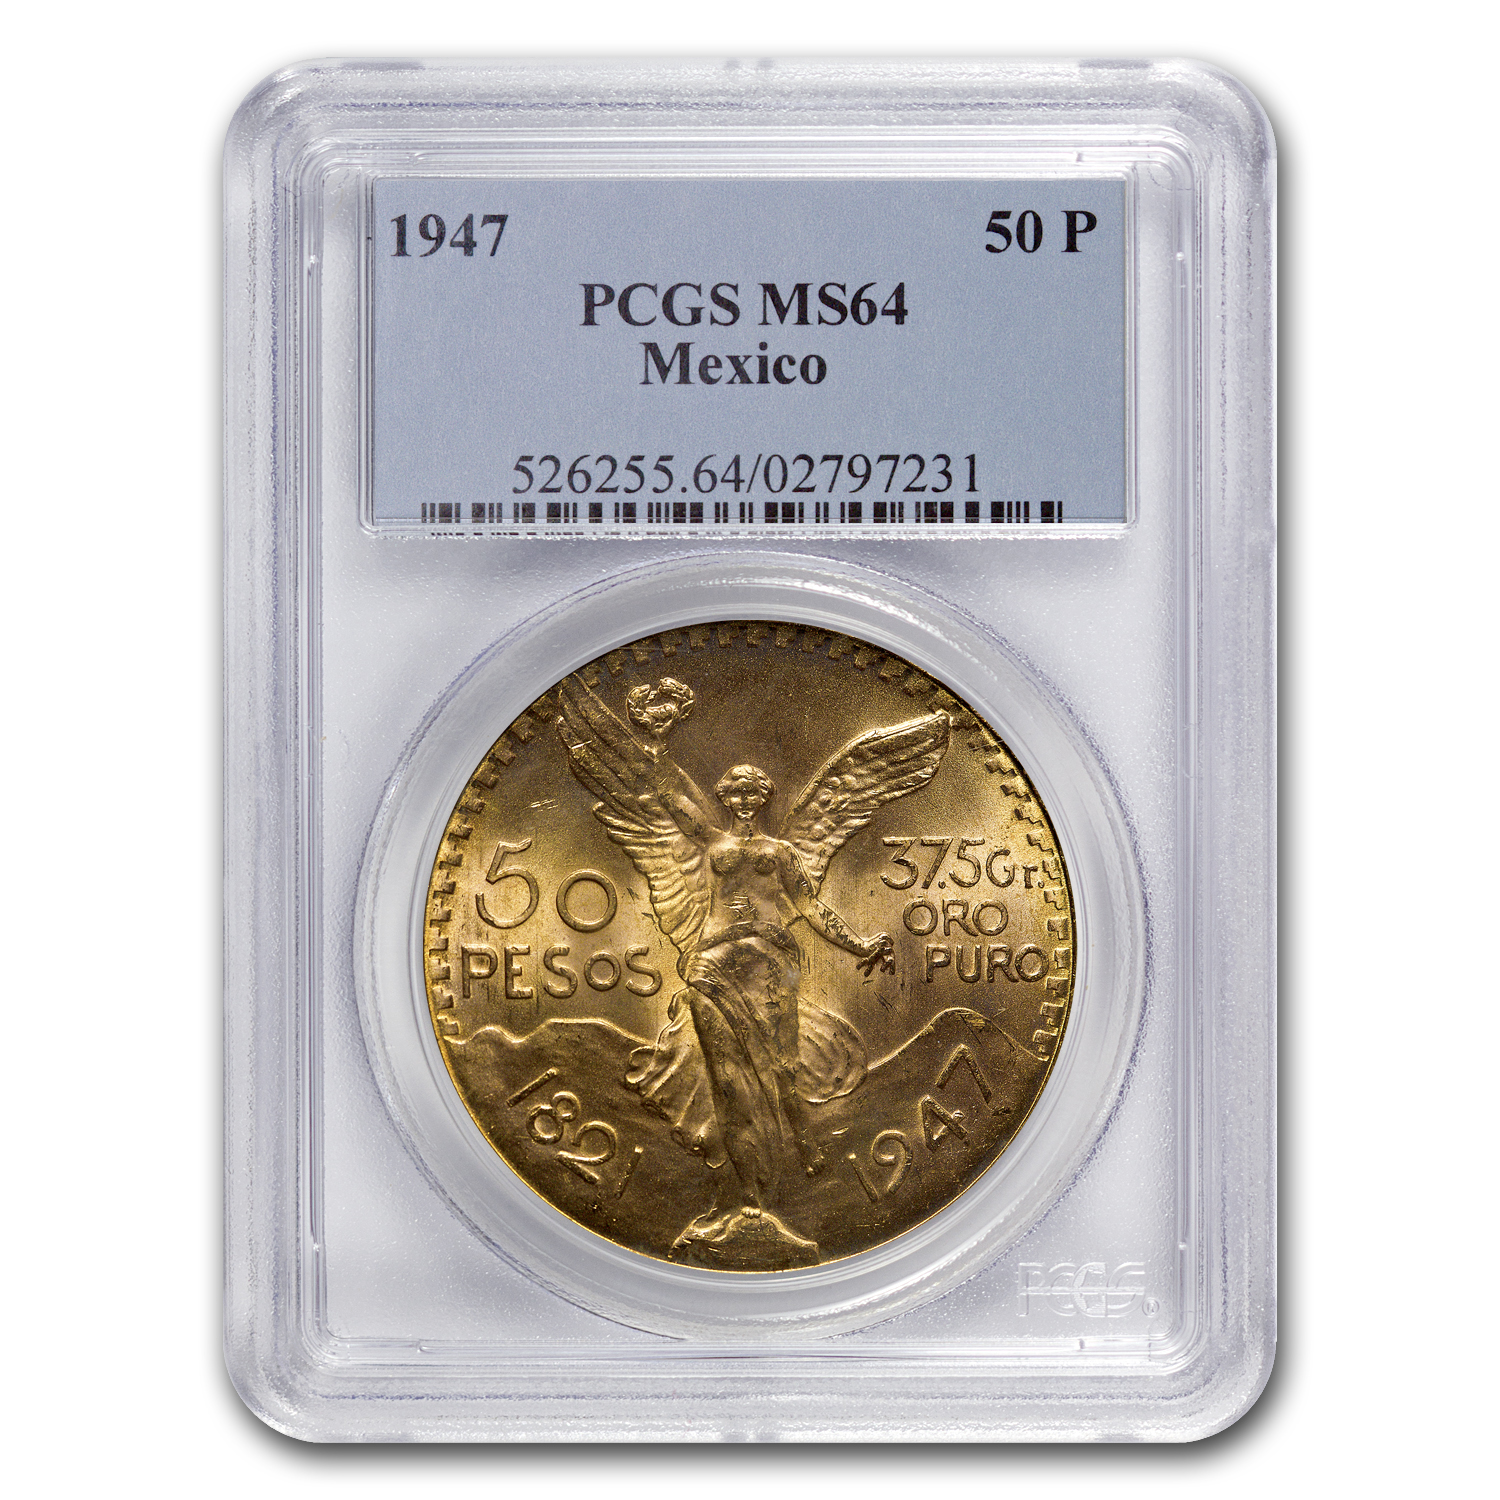 Mexico 1947 50 Pesos Gold Coin - MS-64 PCGS